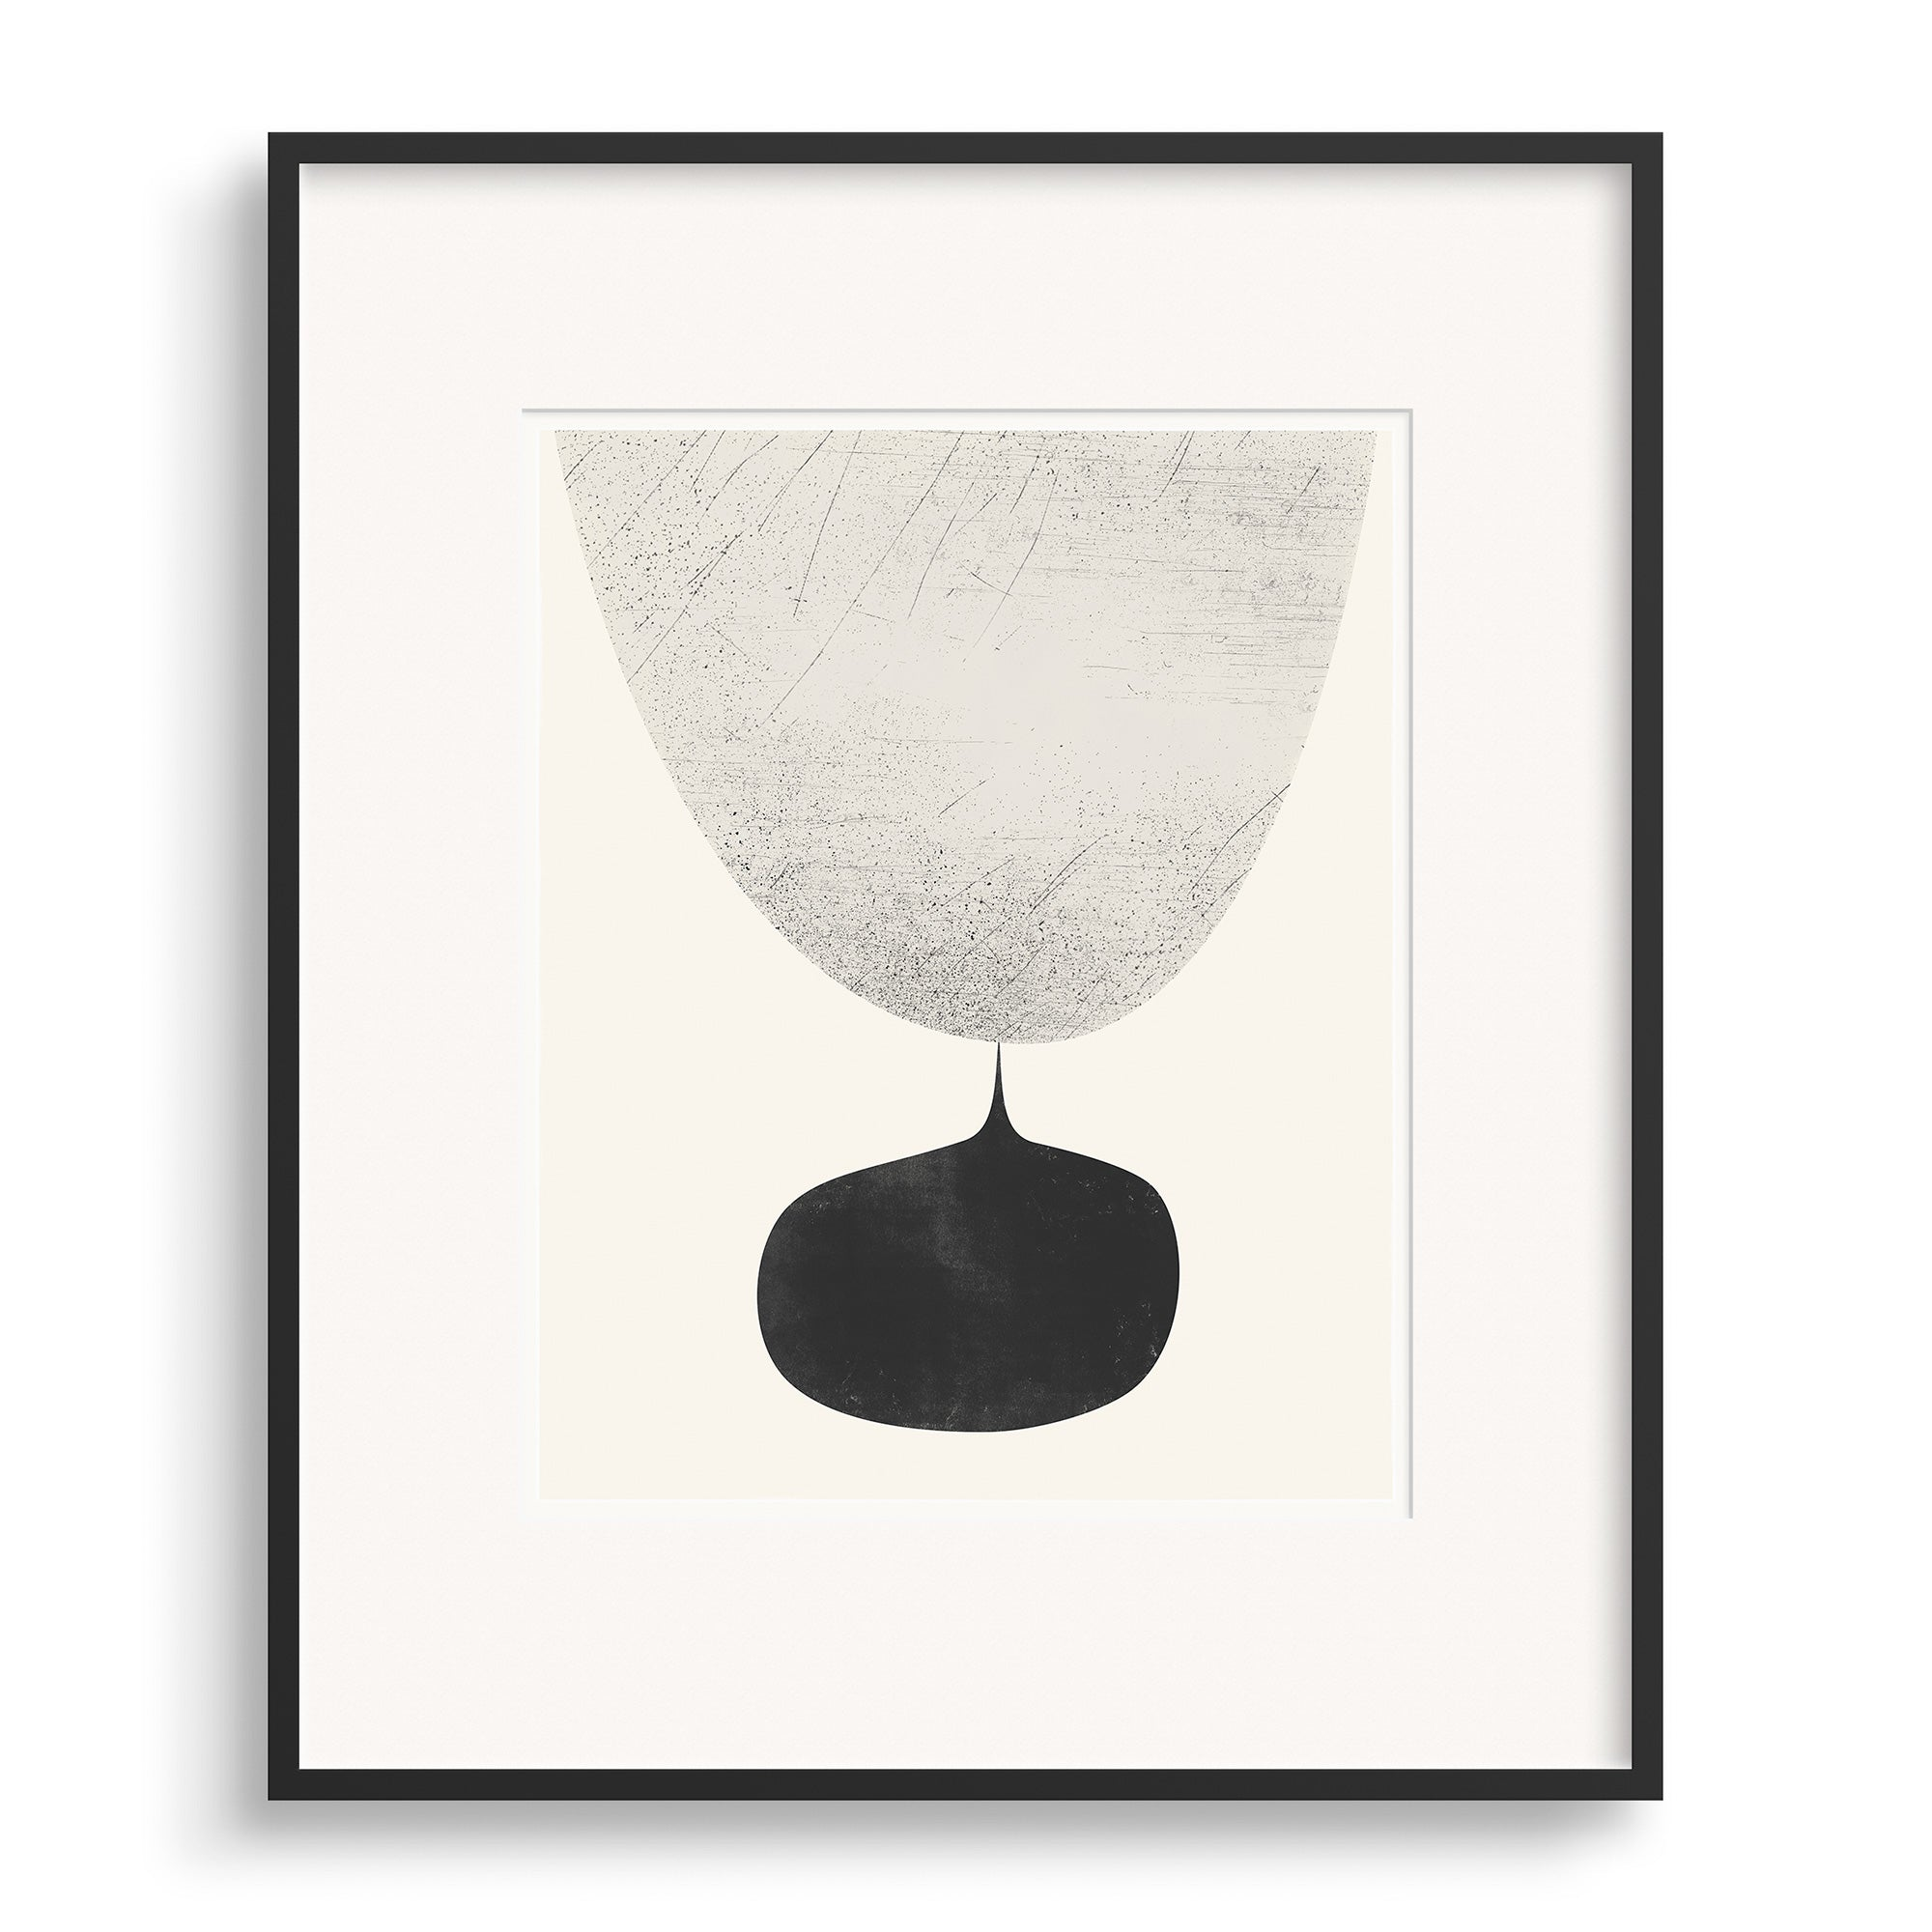 Black framed image of Flow Graphic Print by Janet Taylor | Household Art.